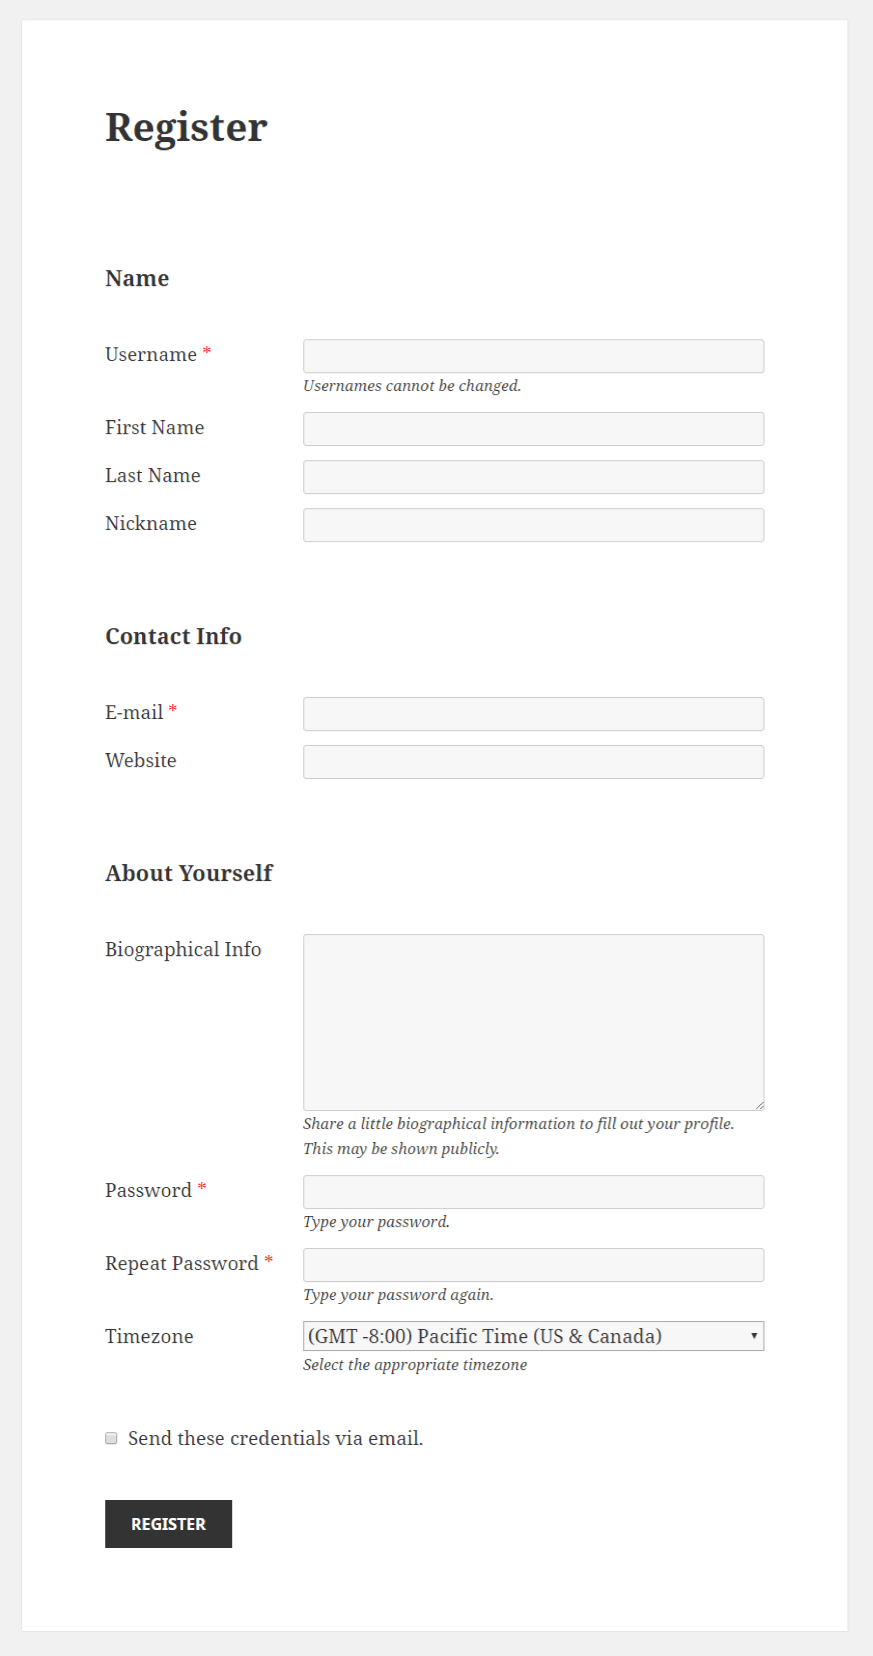 Profile Builder - Select (Timezone) Field Front-End